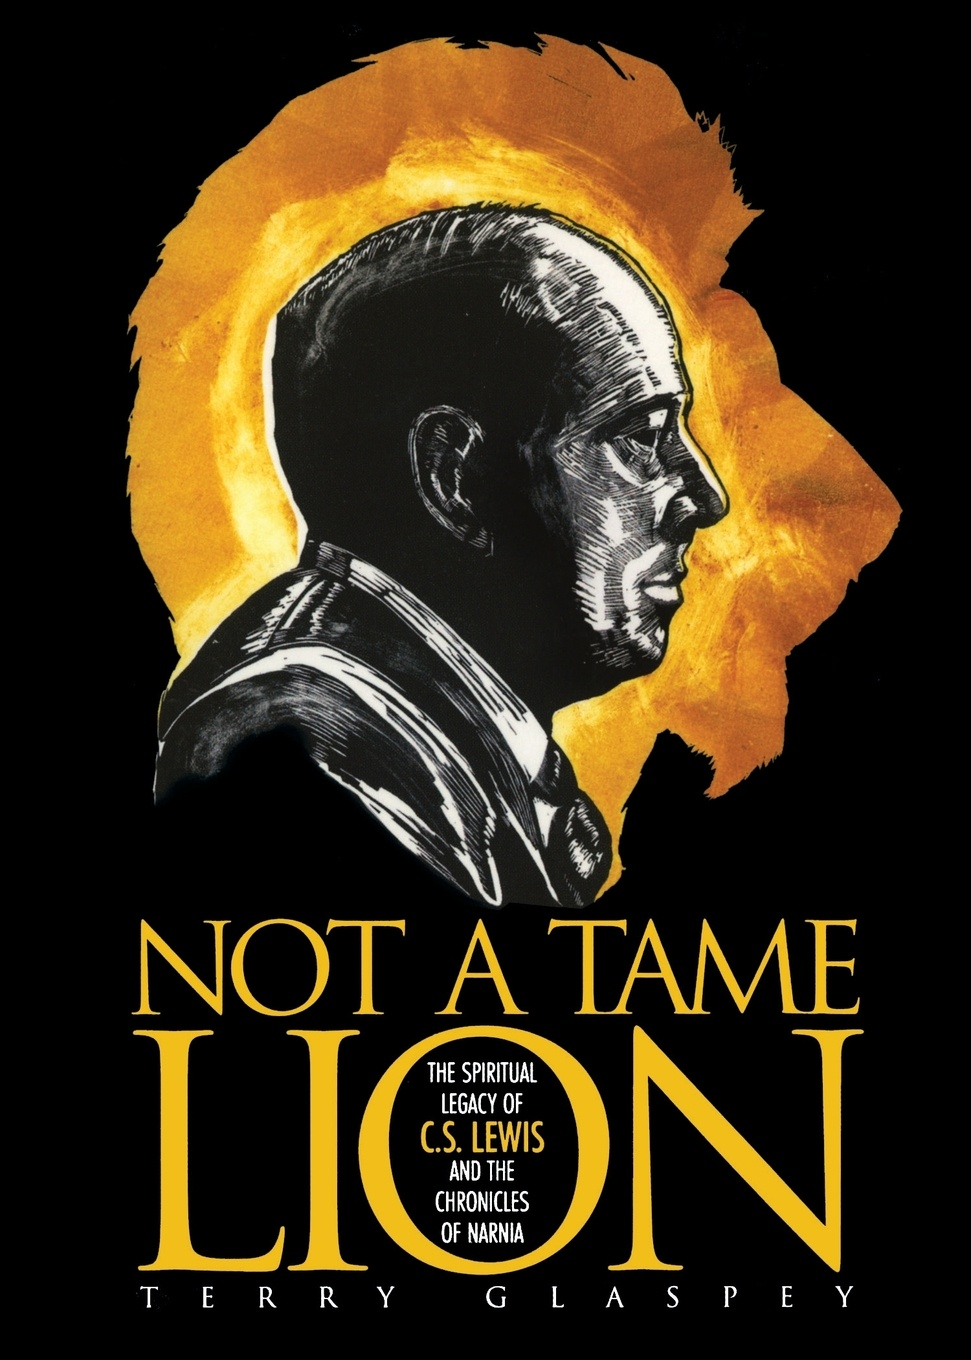 цена на Terry W Glaspey Not a Tame Lion. The Spiritual Legacy of C. S. Lewis and the Chronicles of Narnia